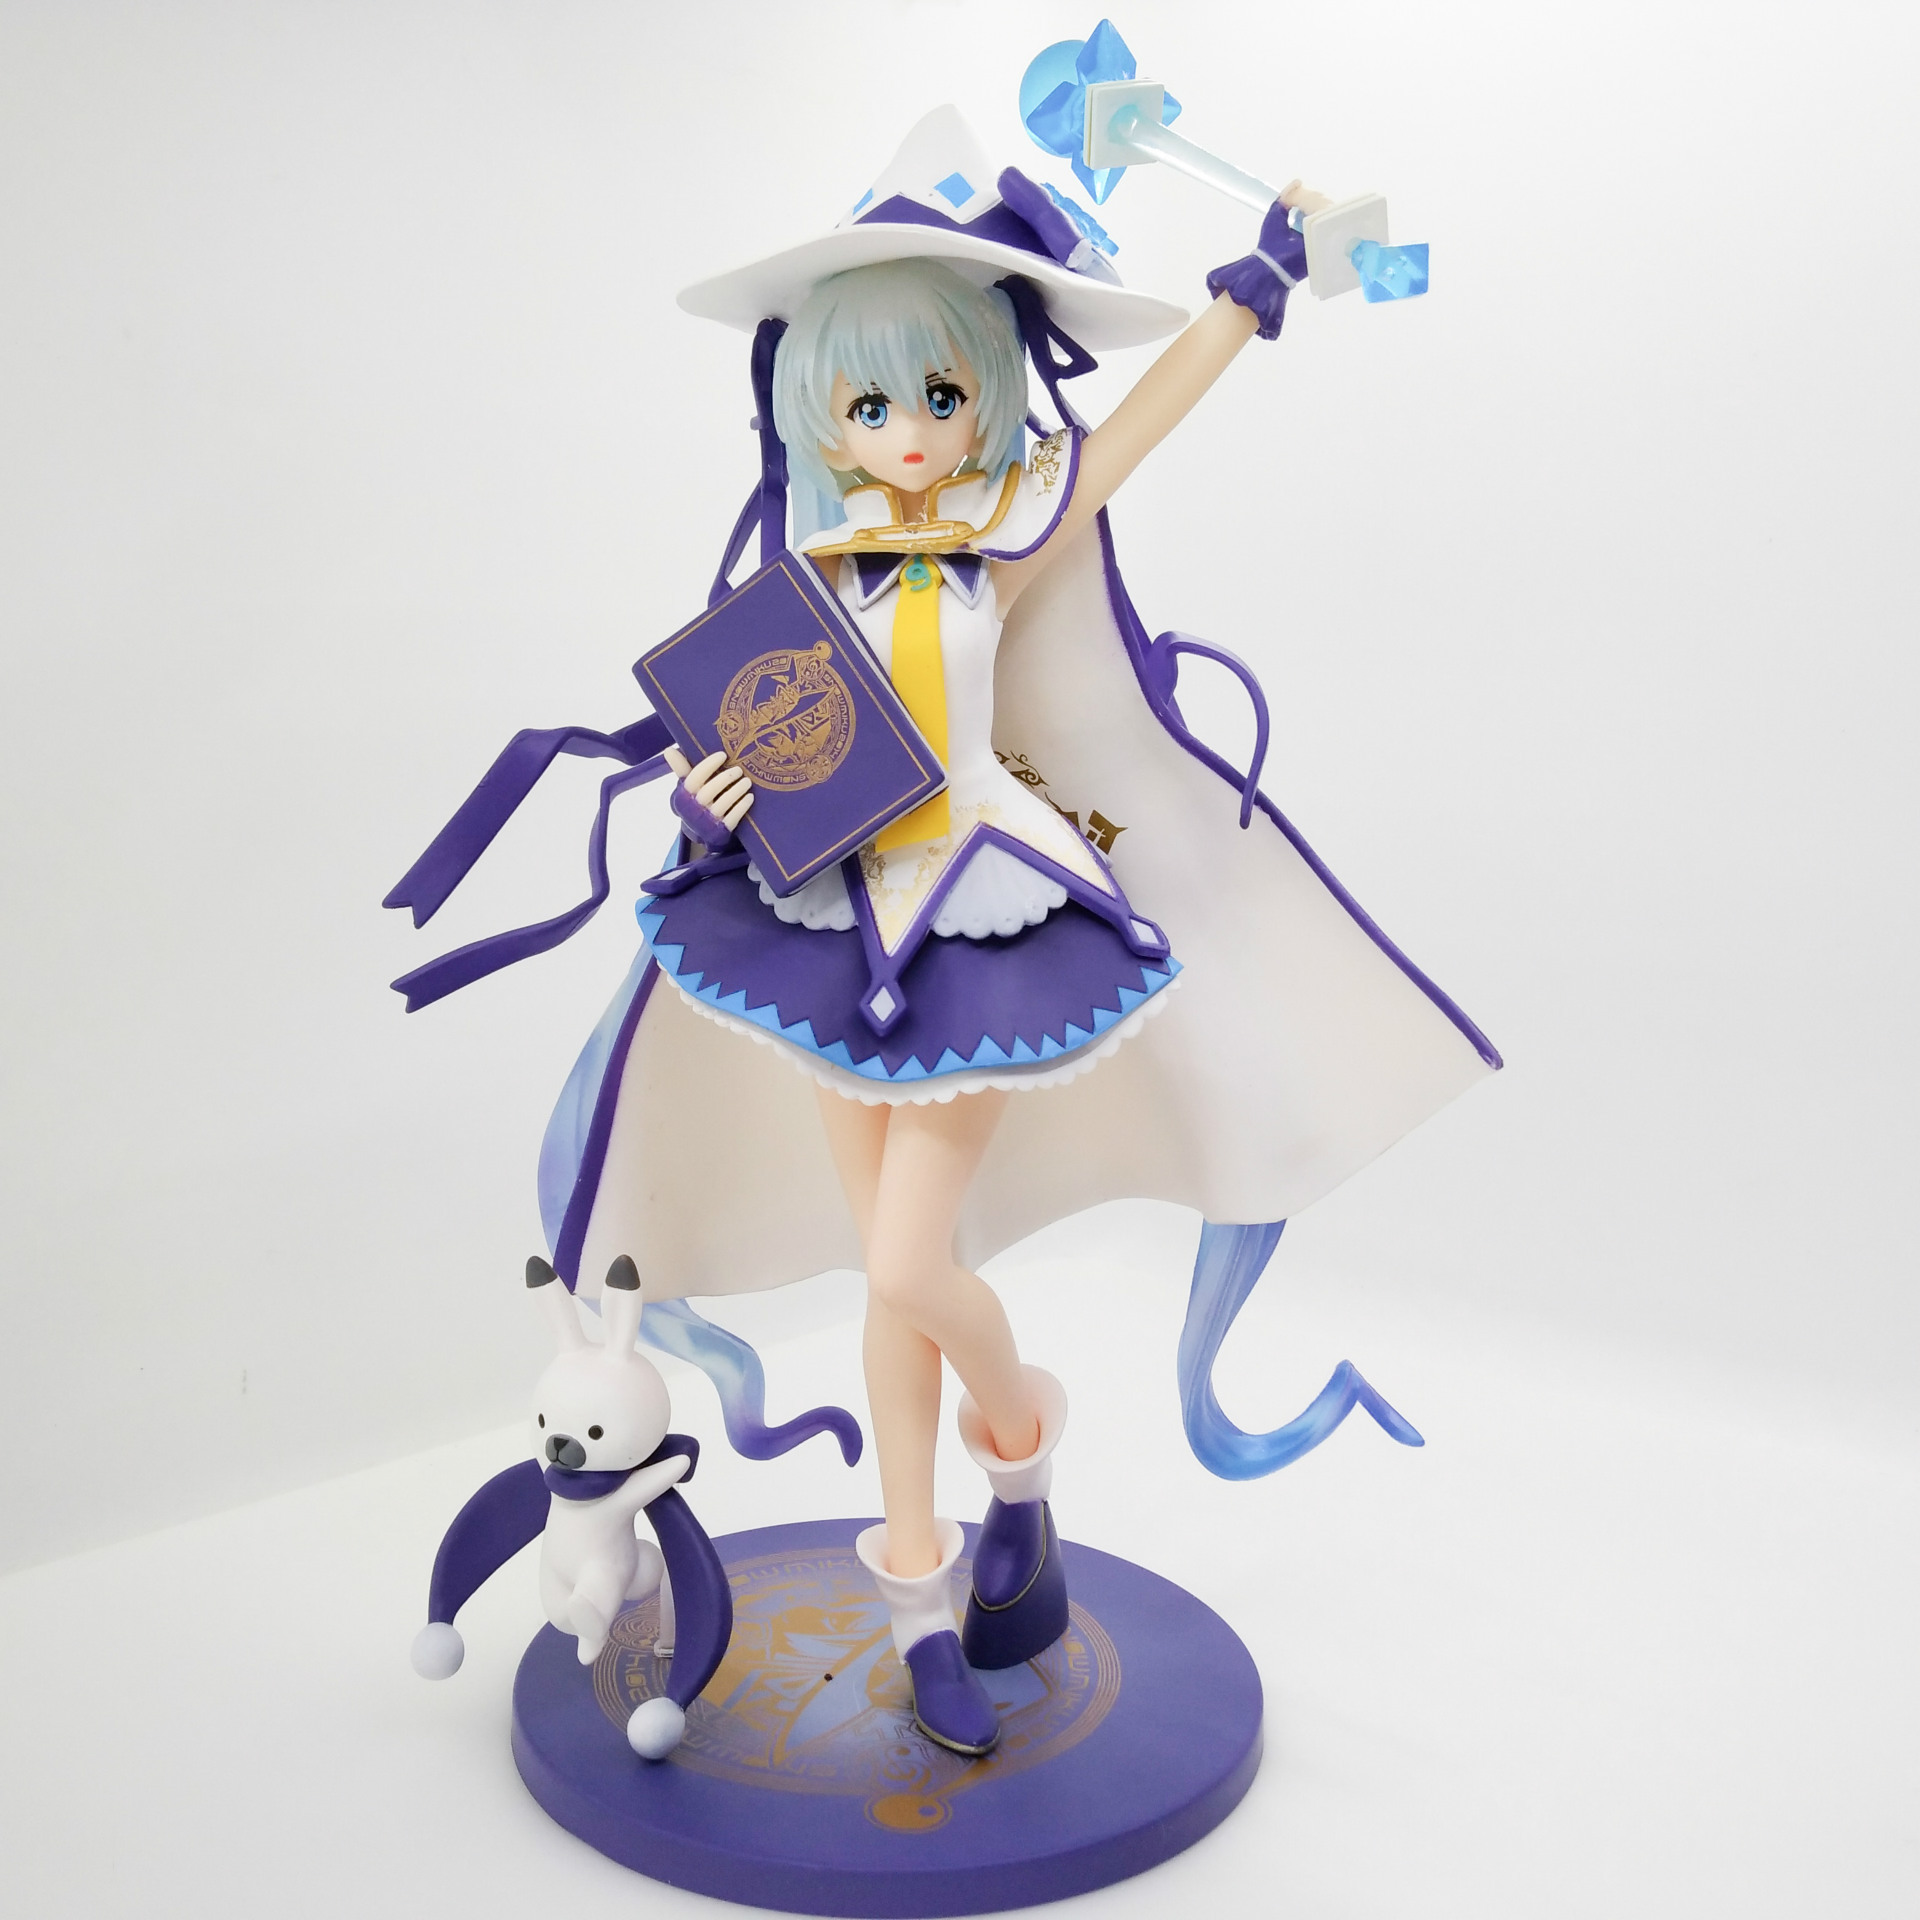 27cm Anime Action Figure VOCALOID Hatsune Miku Magical Snow Ver with Book and Magic Stick PVC Model Collection Magic Girl Doll hatsune miku winter plush doll